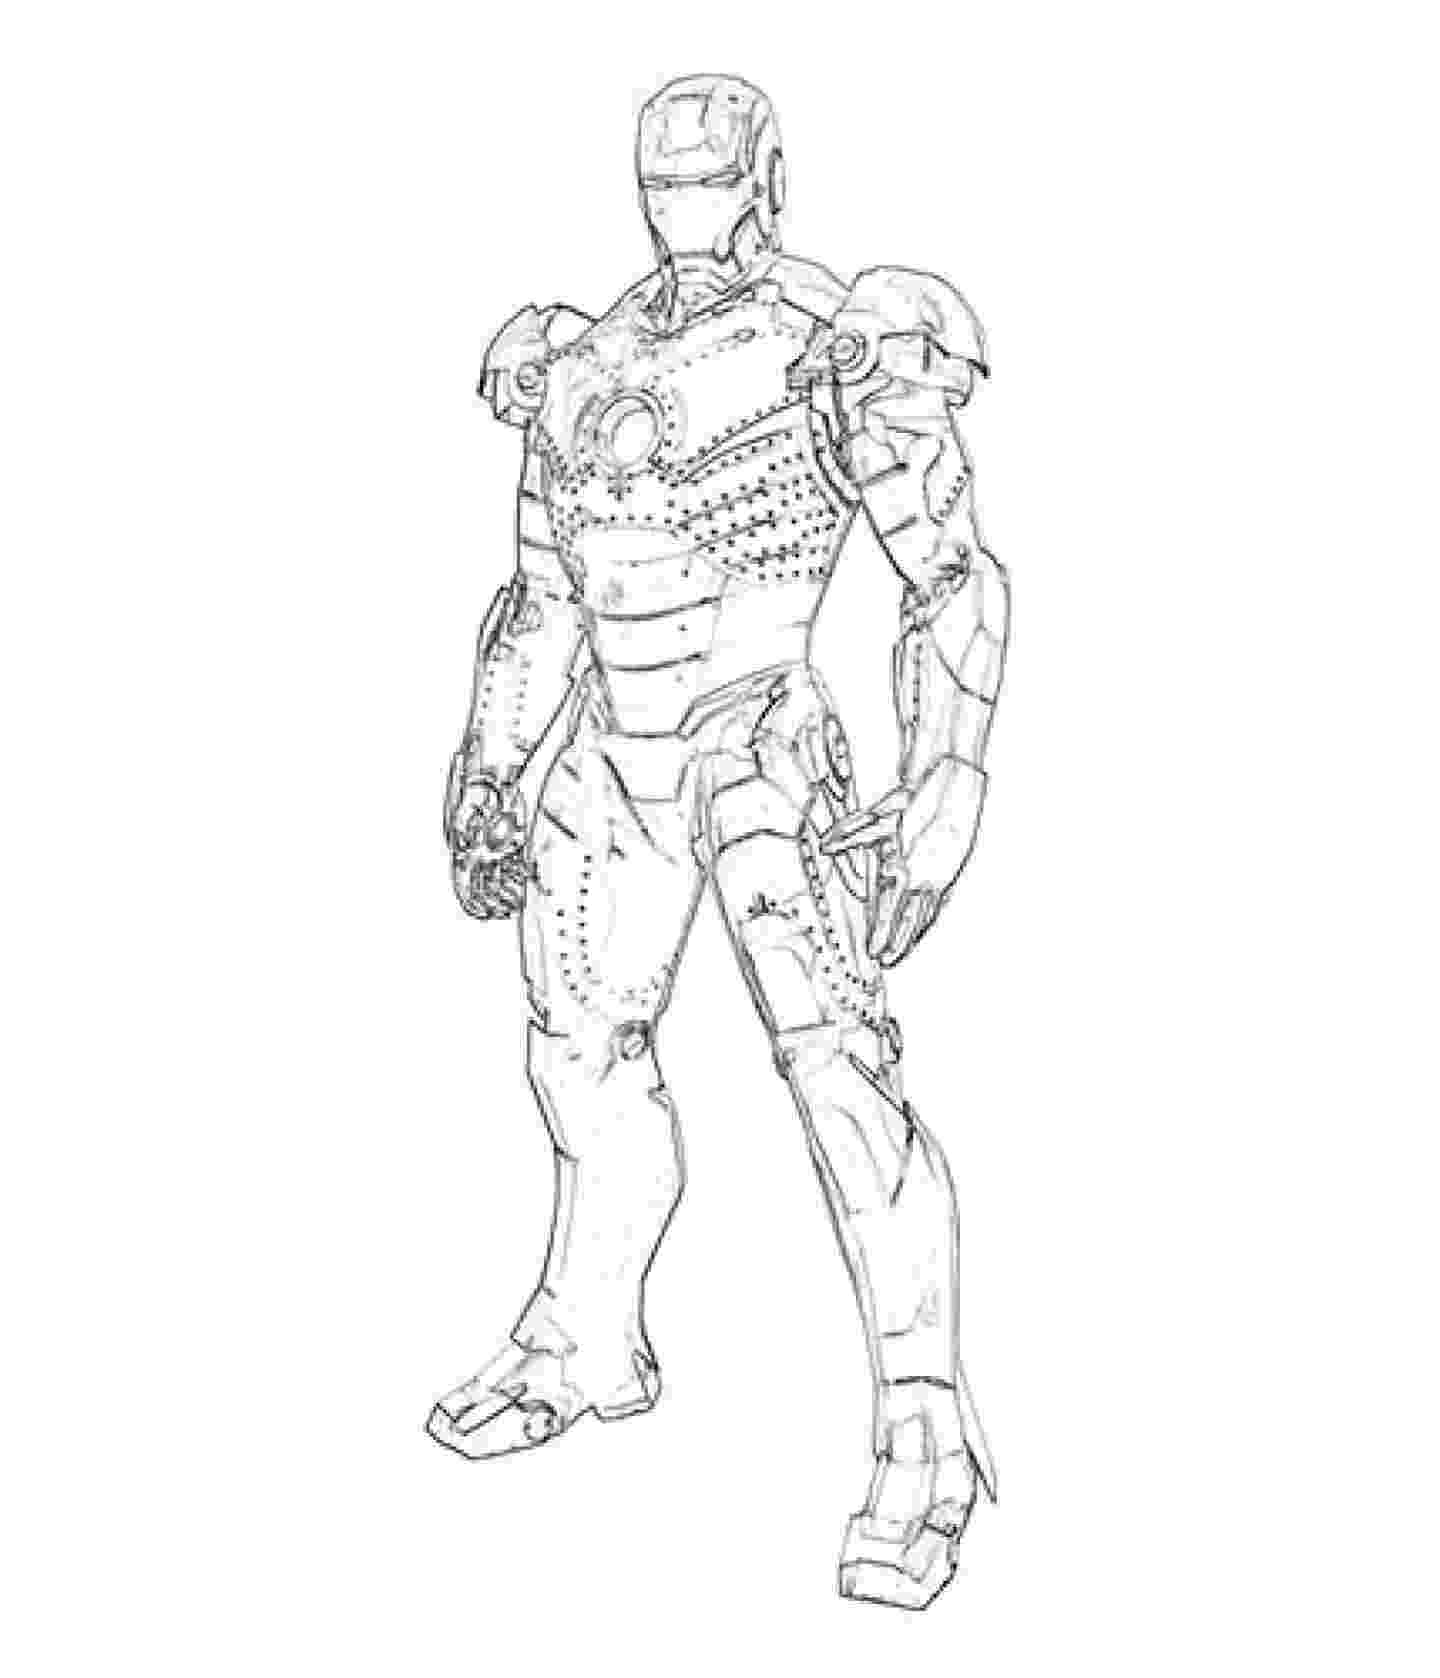 ironman coloring free printable iron man coloring pages for kids best ironman coloring 1 3